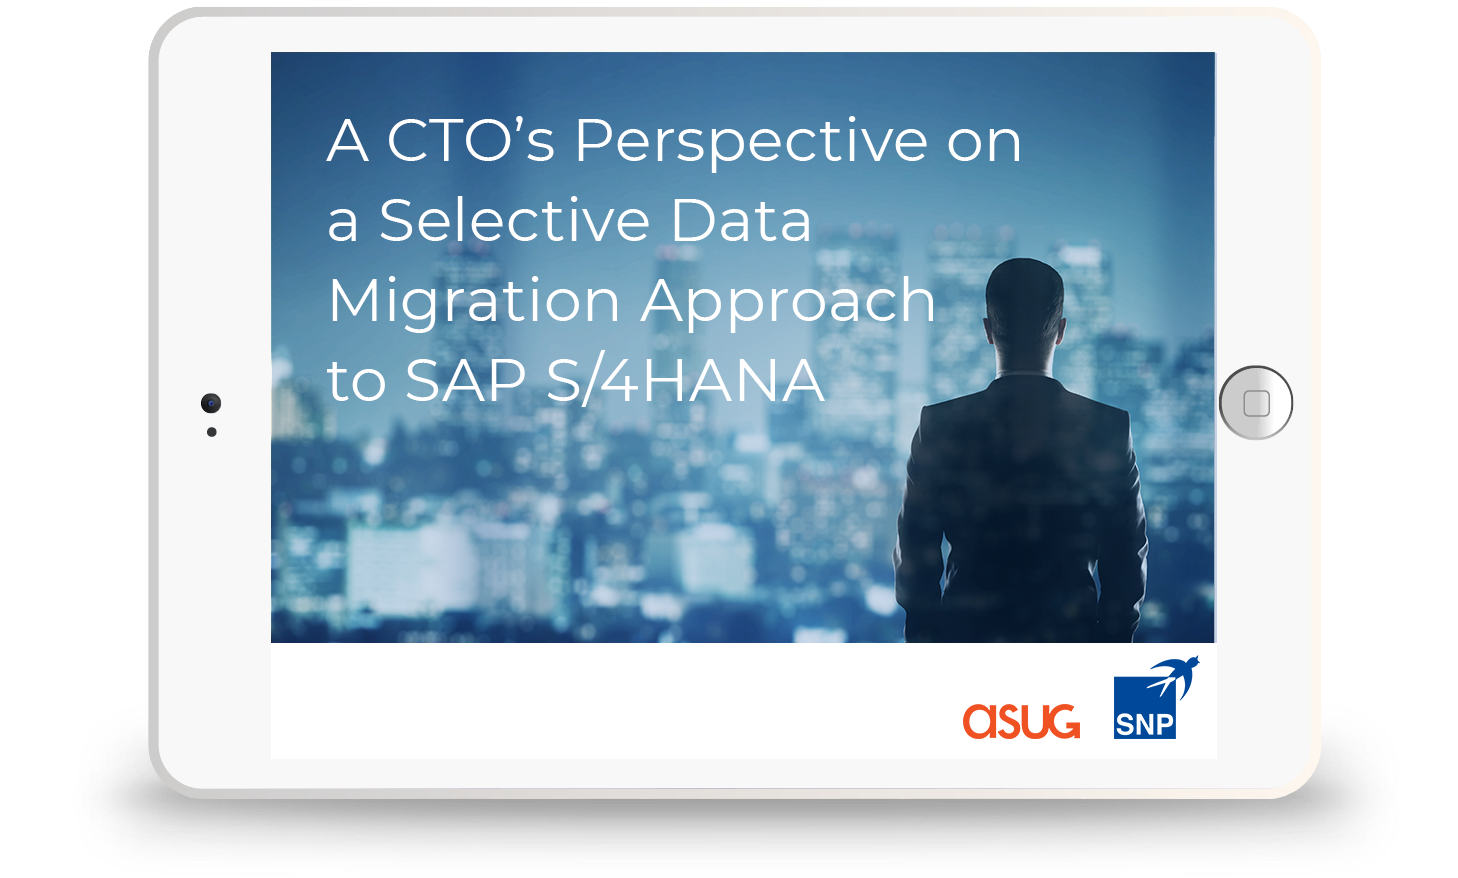 CTO's Perspective on a Selective Data Migration Approach to SAP S/4HANA